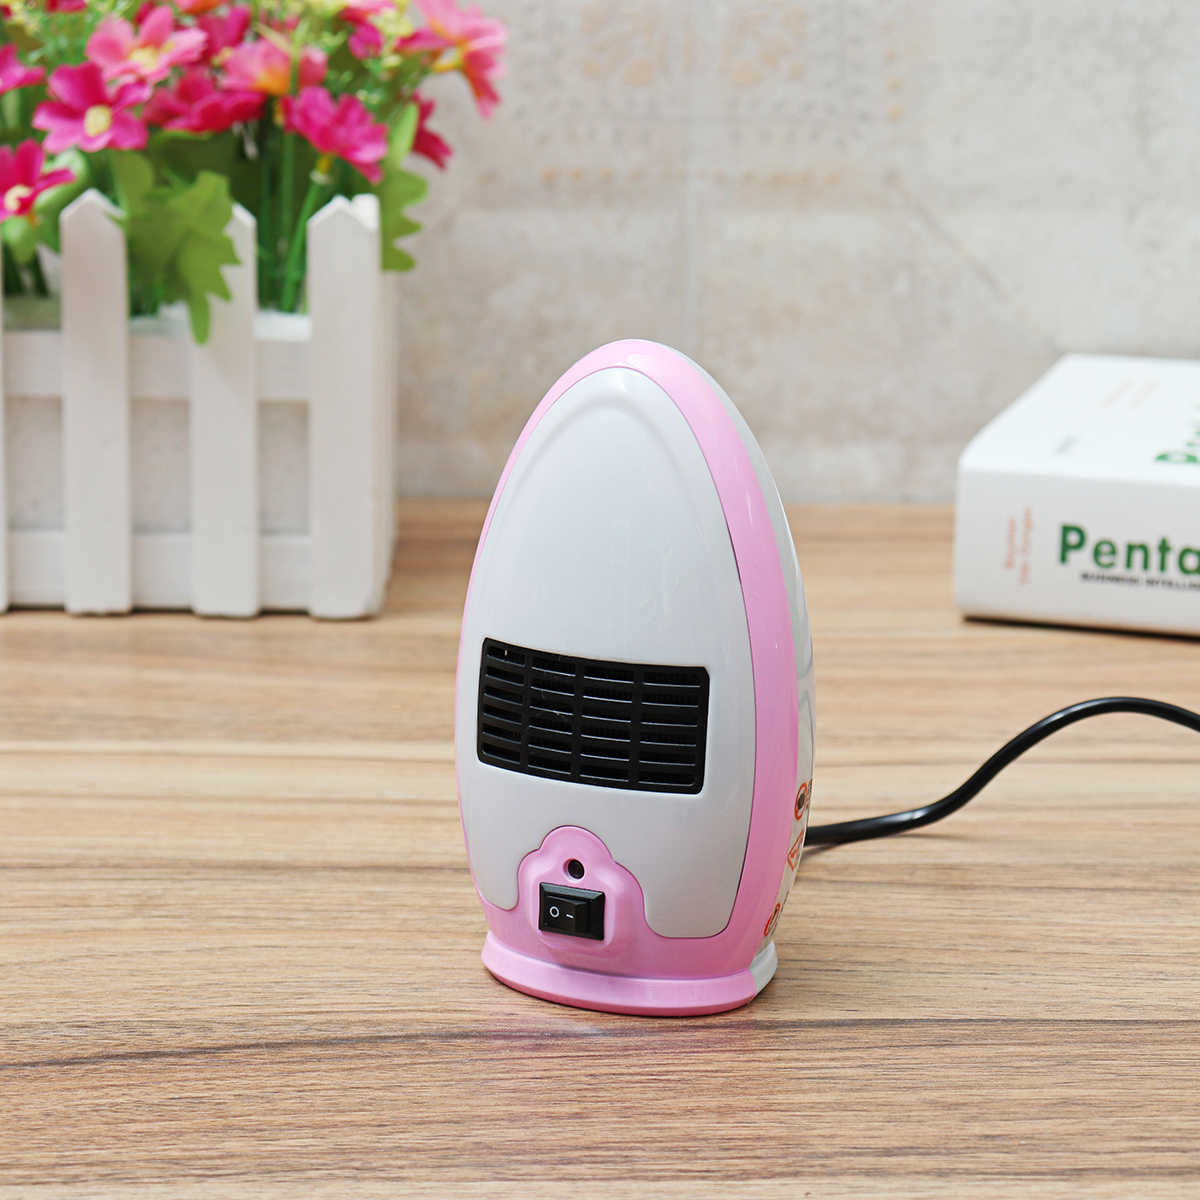 200w 220v electric heater mini electric warm air heater fan stove for desktop household home office  [ 1200 x 1200 Pixel ]